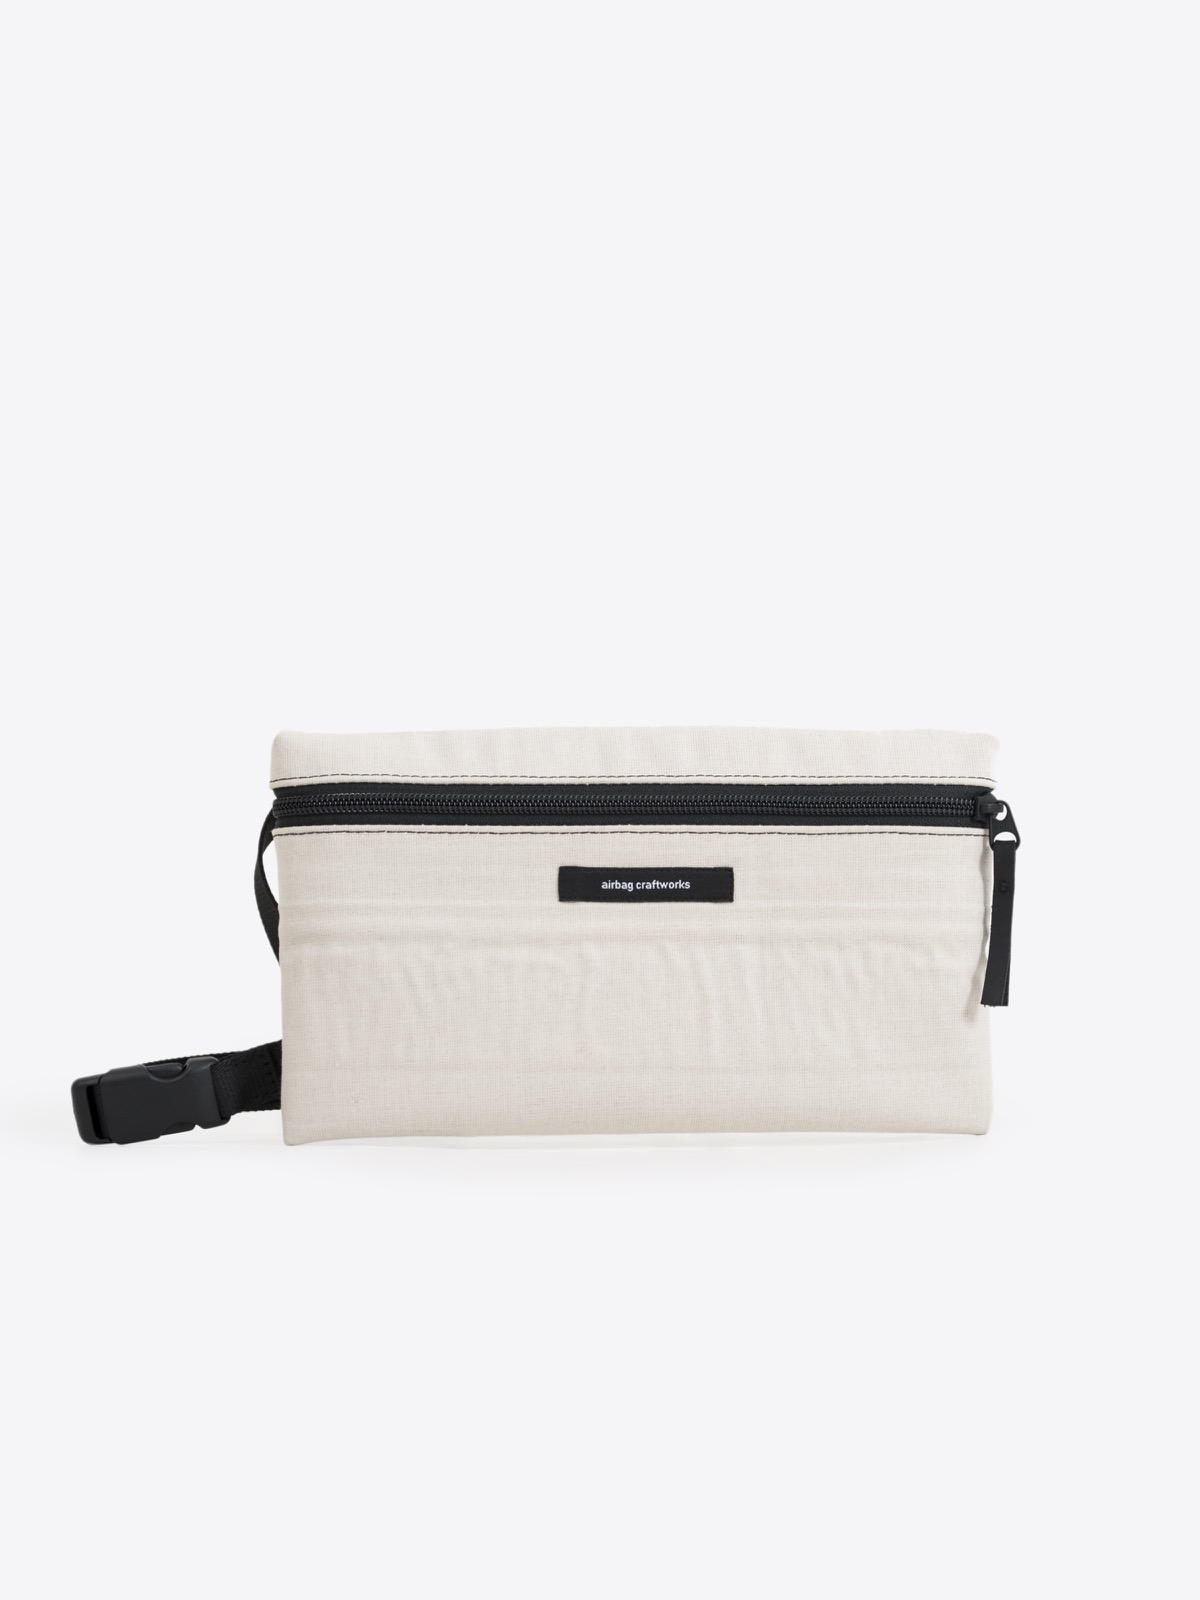 airbag craftworks offwhite